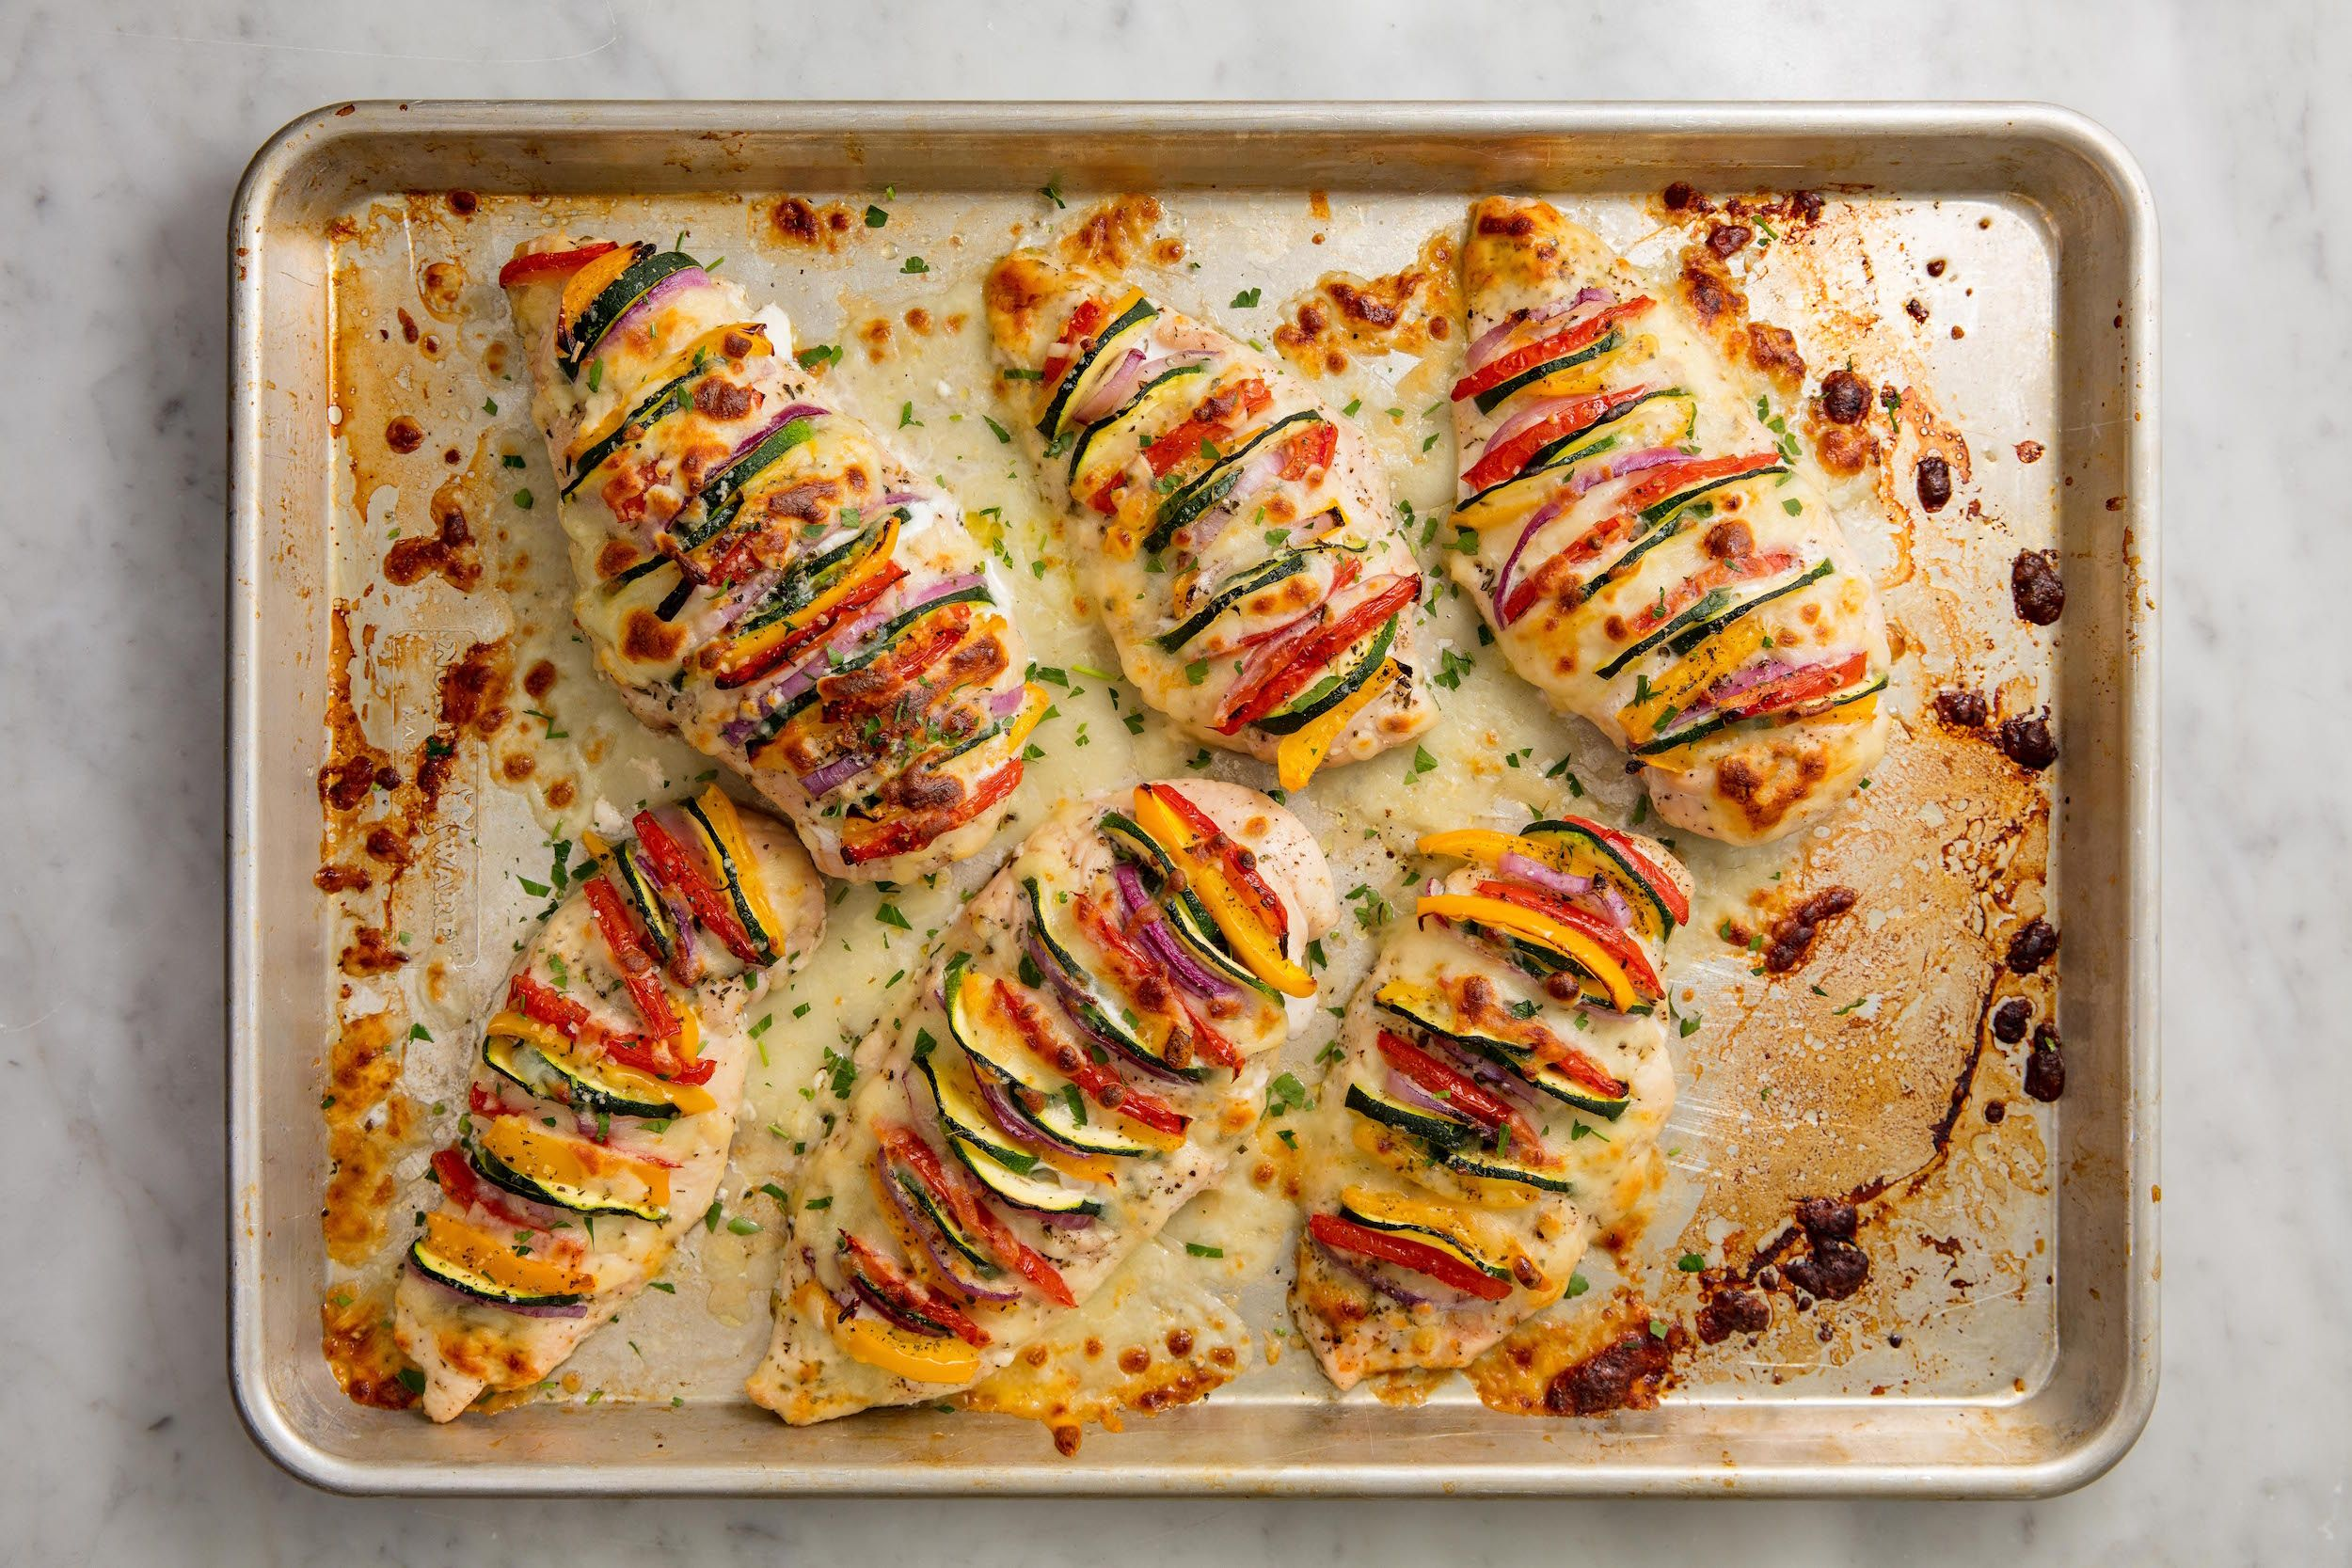 How to cook chicken breast to shred in oven at 400